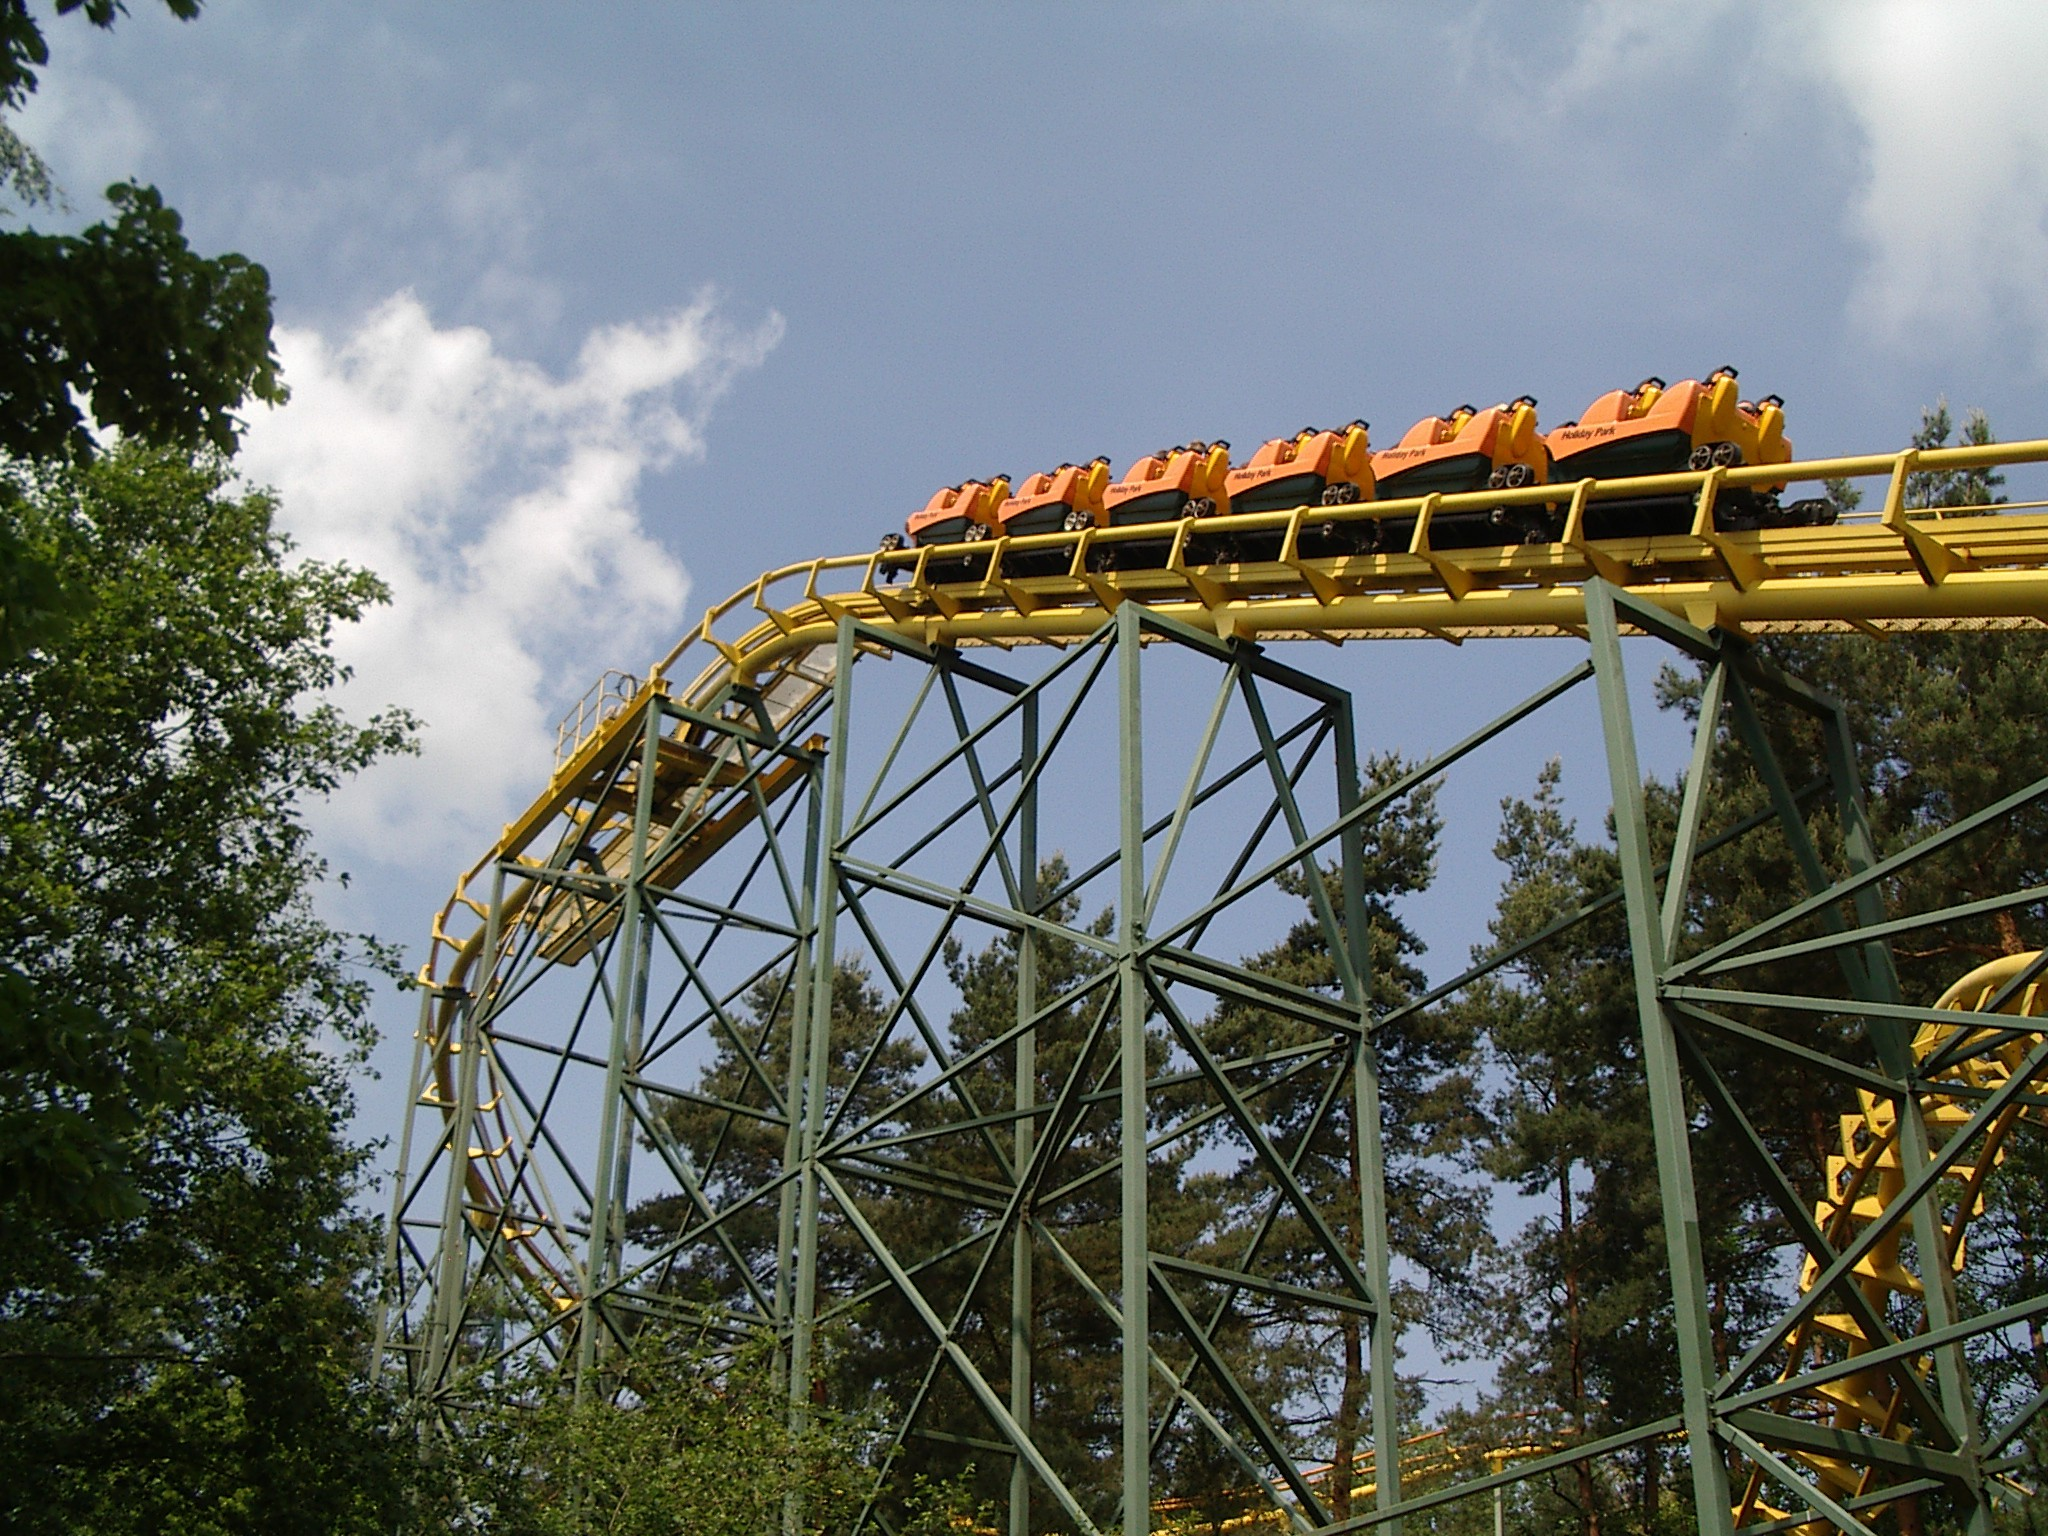 The Best Amusement Parks in Germany